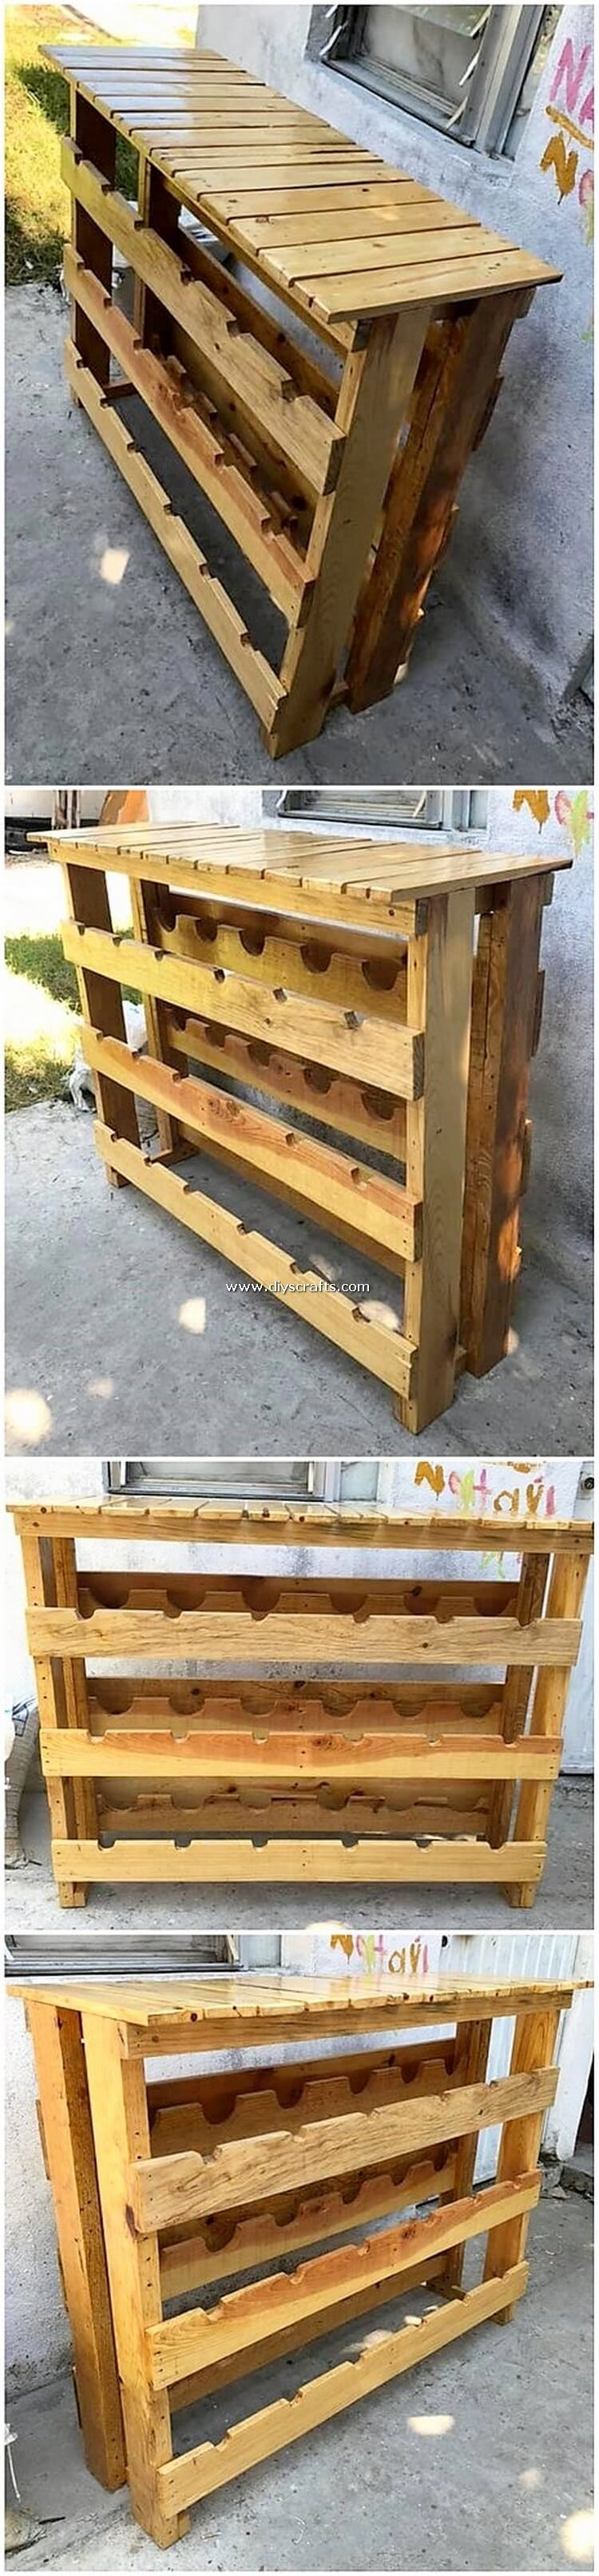 Pallet-Shelving-Table-1